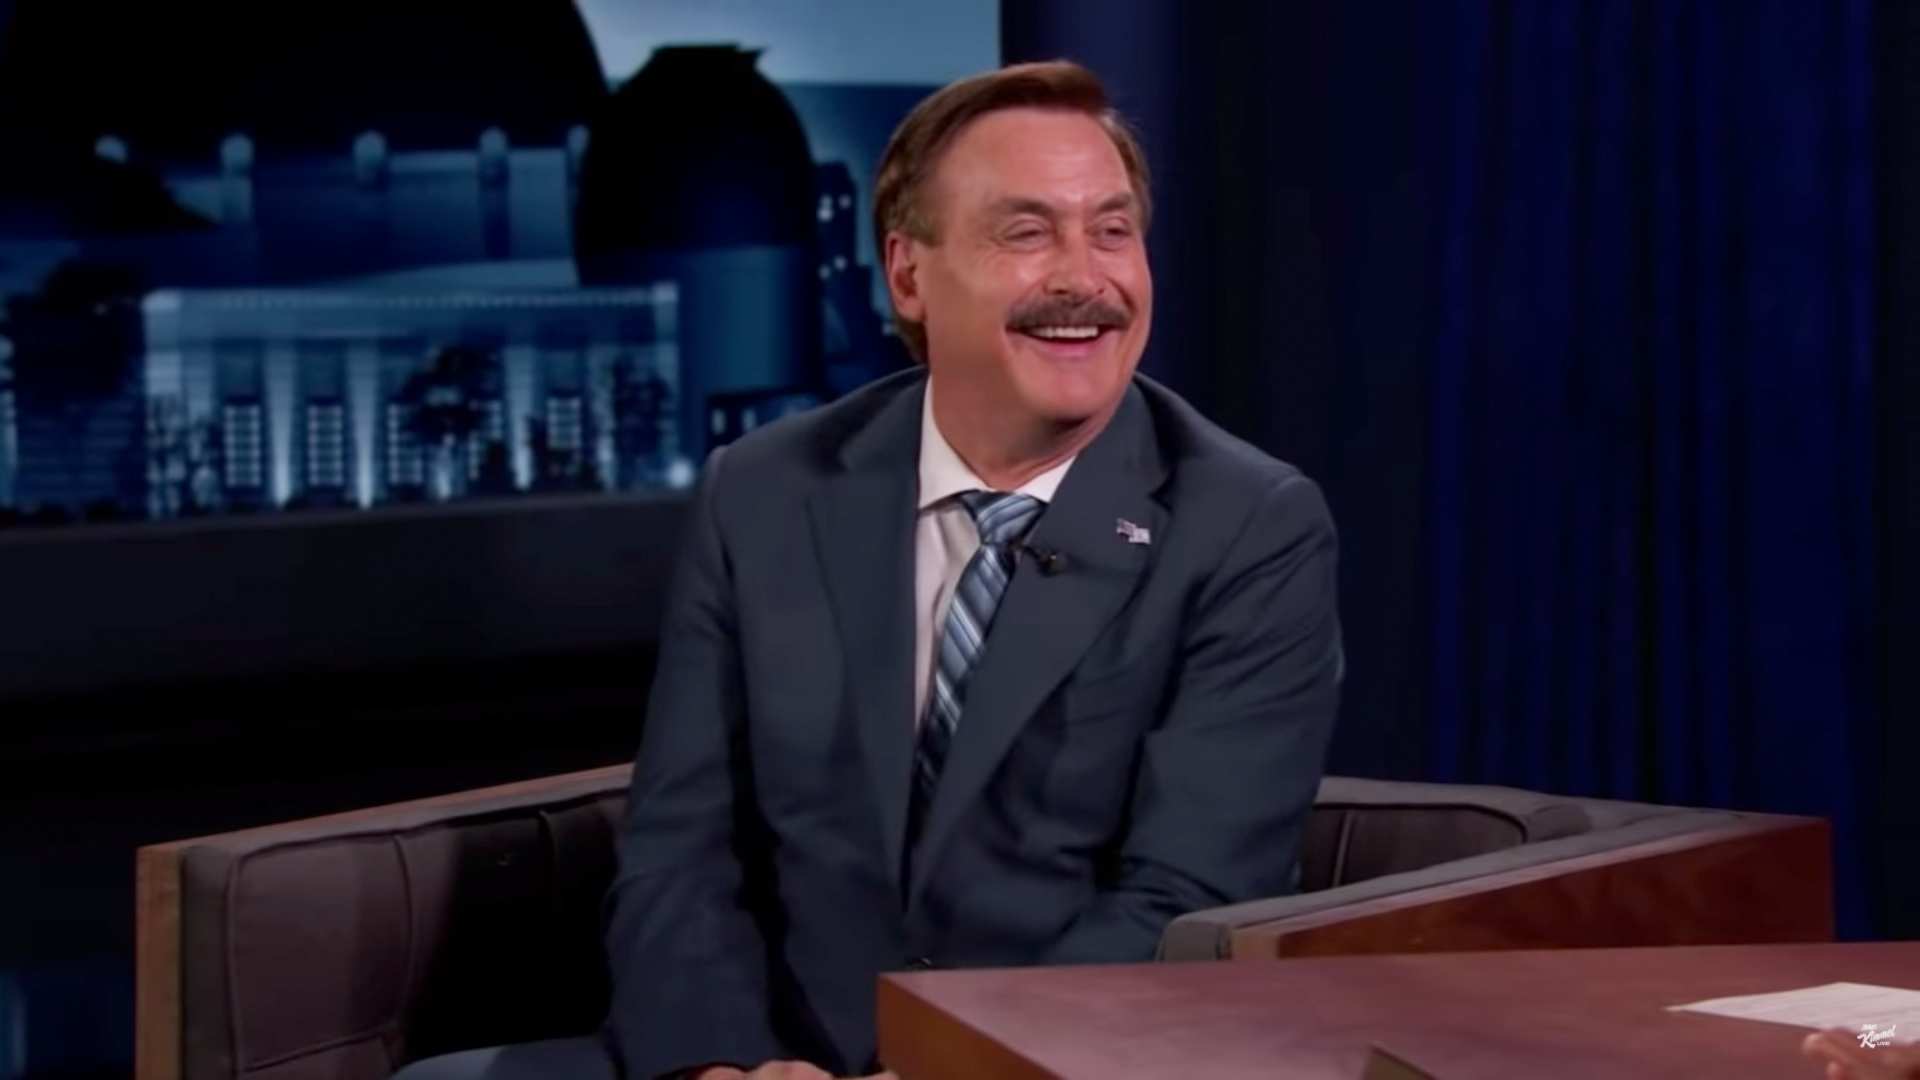 MyPillow.com CEO Mike Lindell on Jimmy Kimmel Live